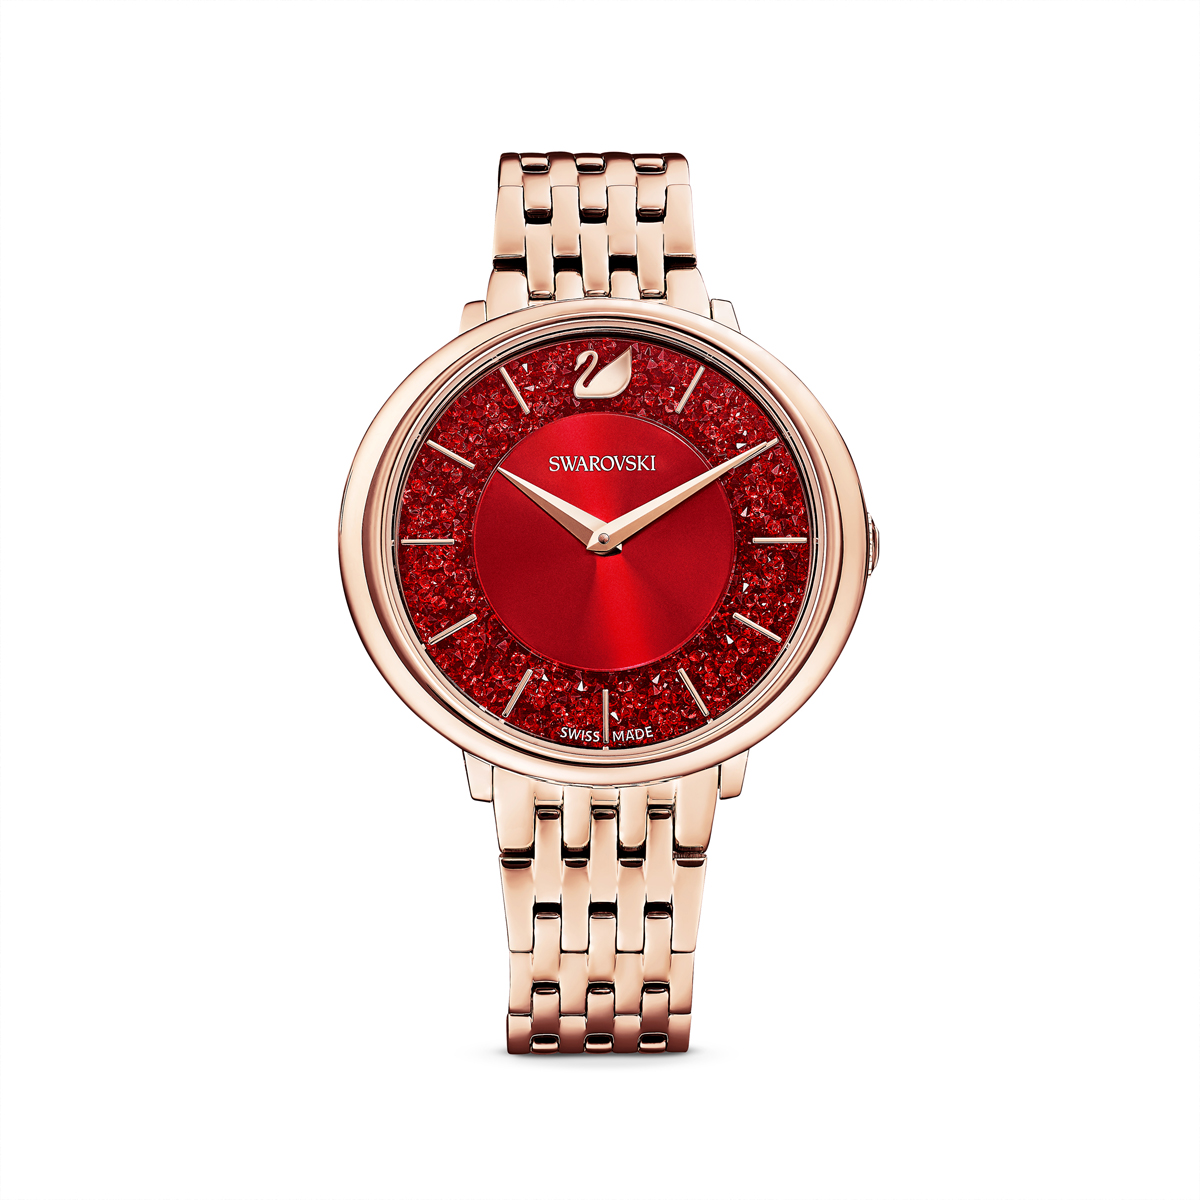 Swarovski Crystalline Chic Watch, Metal Bracelet, Red, Rose Gold Tone